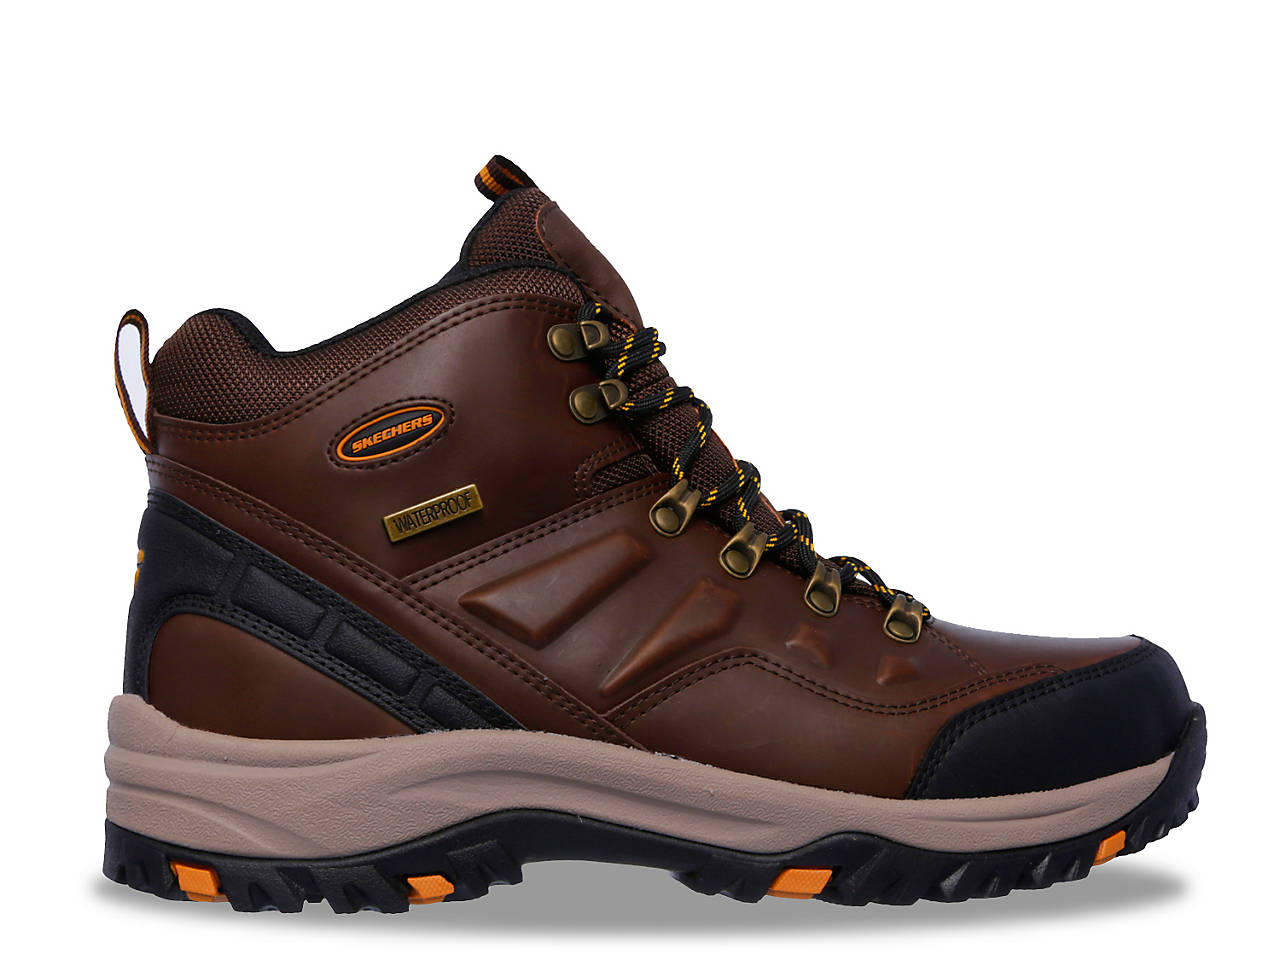 5f3d205f4c675 Skechers Relaxed Fit Relment Traven Hiking Boot Men's Shoes | DSW